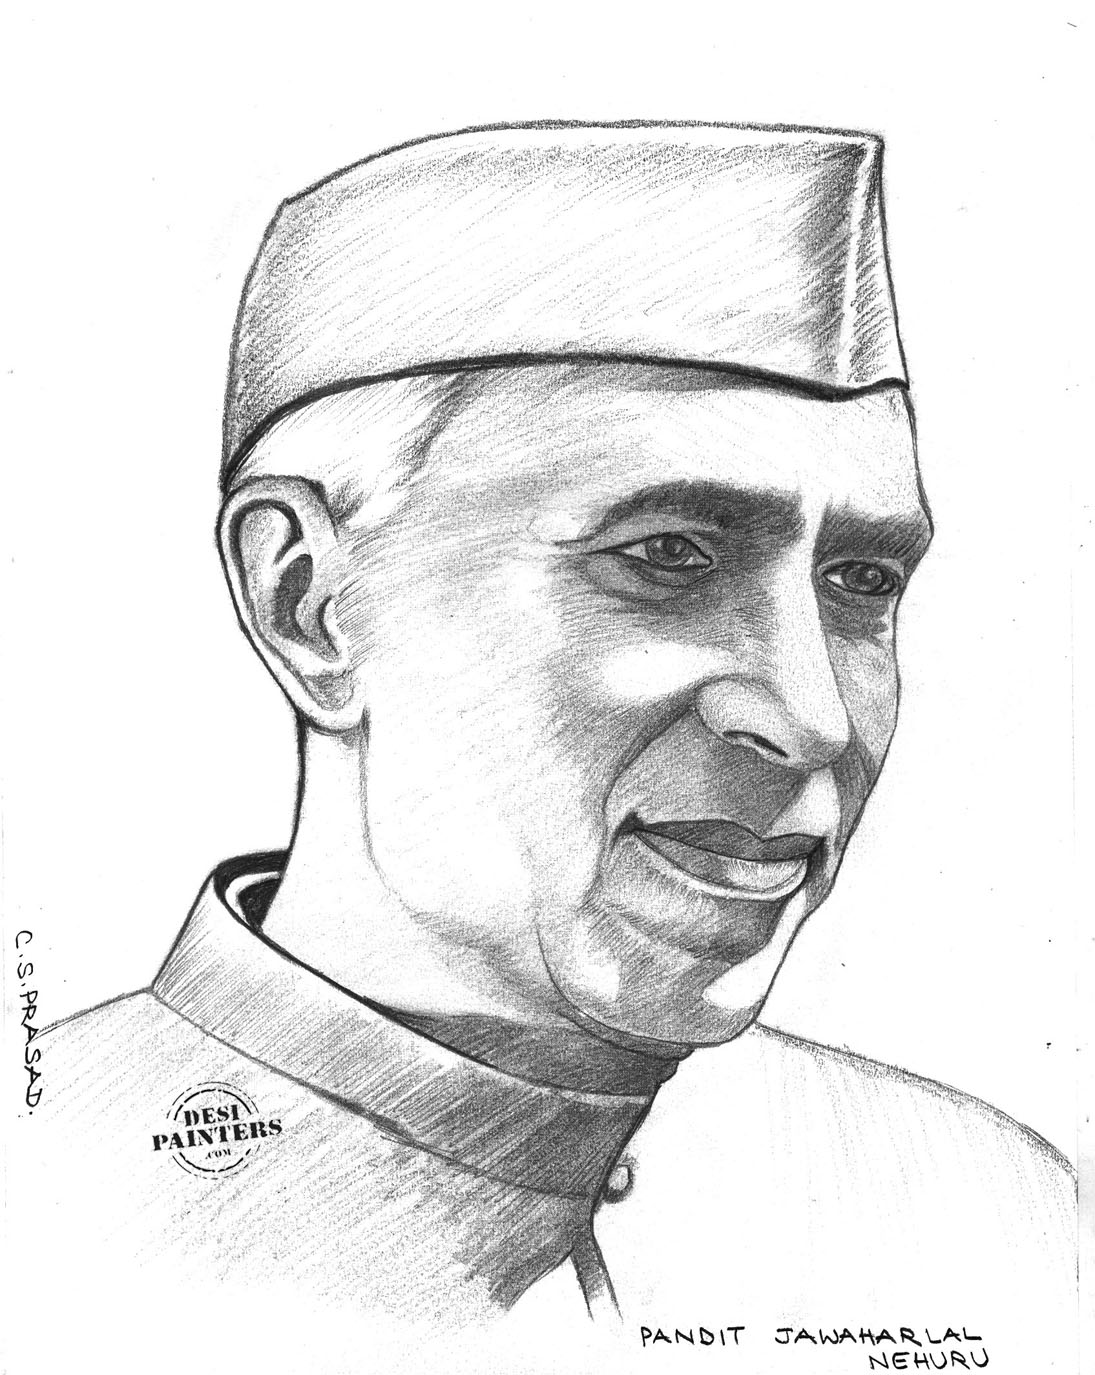 jawaharlal nehru leadership qualities Servant leadership qualities of mahatma gandhi, the great role model of truth and non-violence in indian history (nair, 1994, p 7), and the great freedom  jawaharlal nehru, was a leading figure in india's political struggle for independence from british rule, and became the first prime minister of the wed.